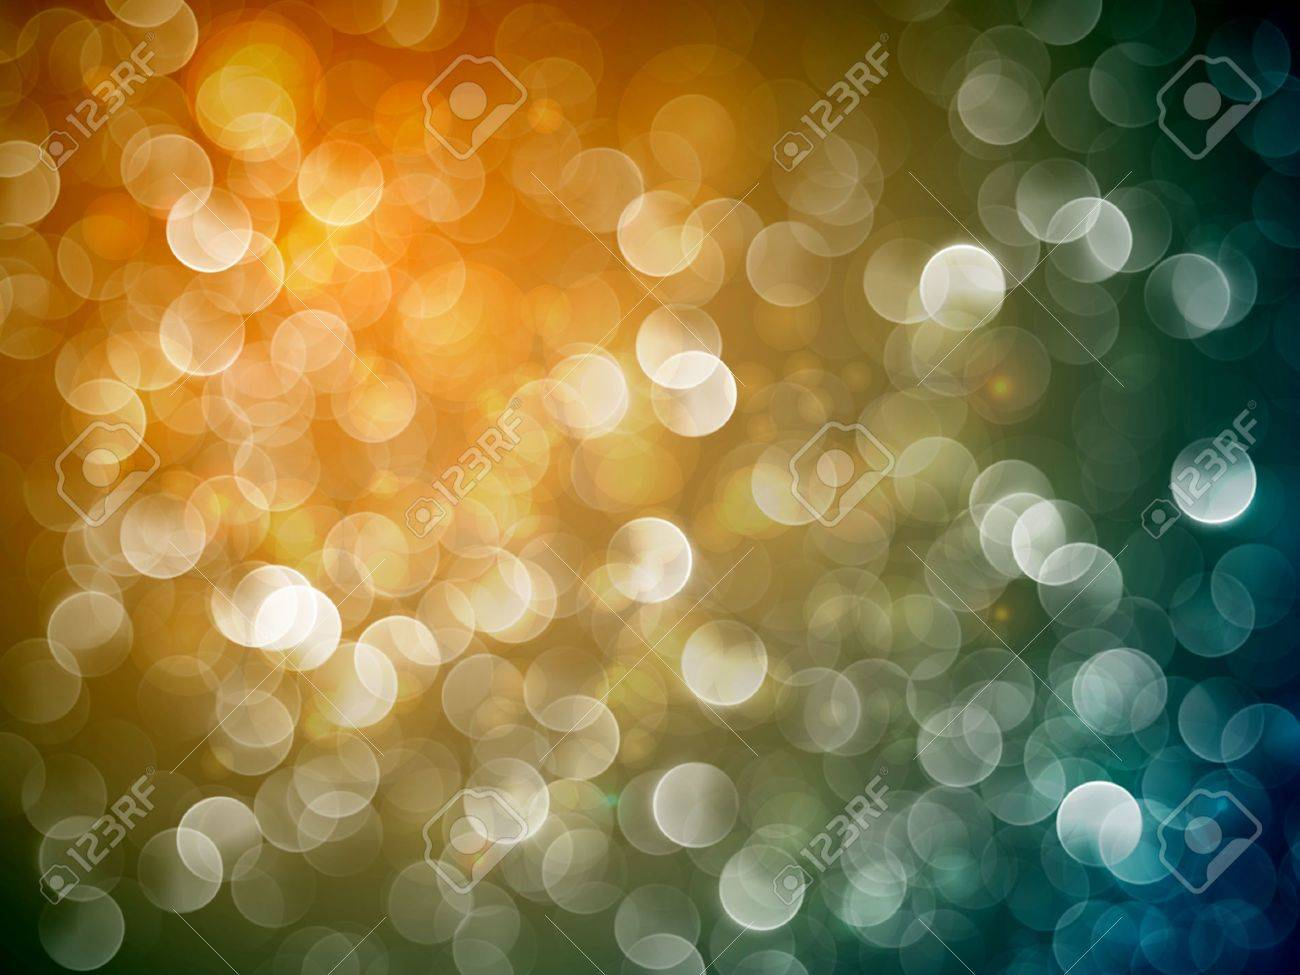 flickering lights christmas background eps10 vector with